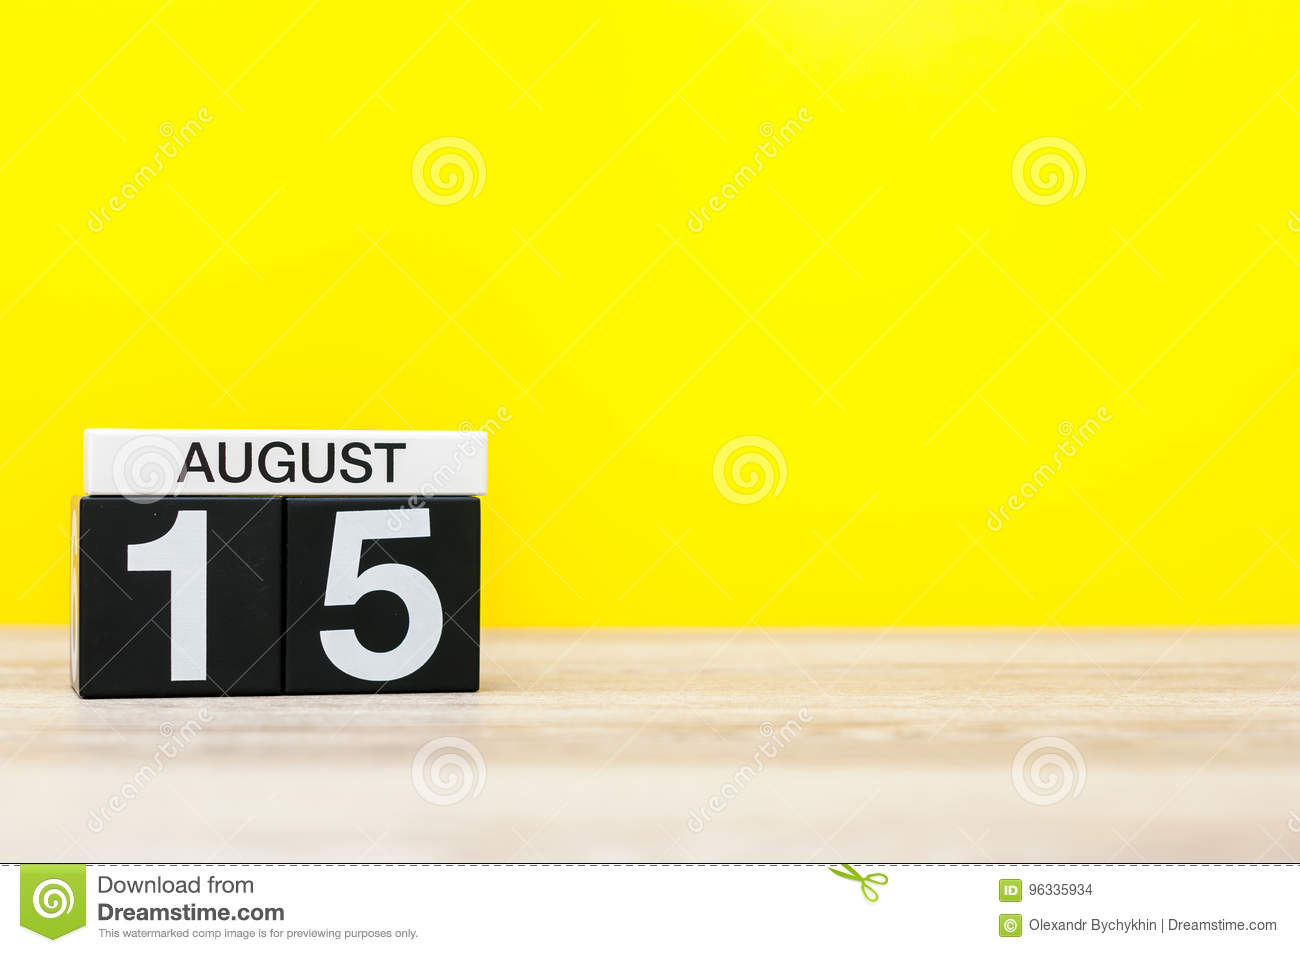 Time Will Tell: August 15th